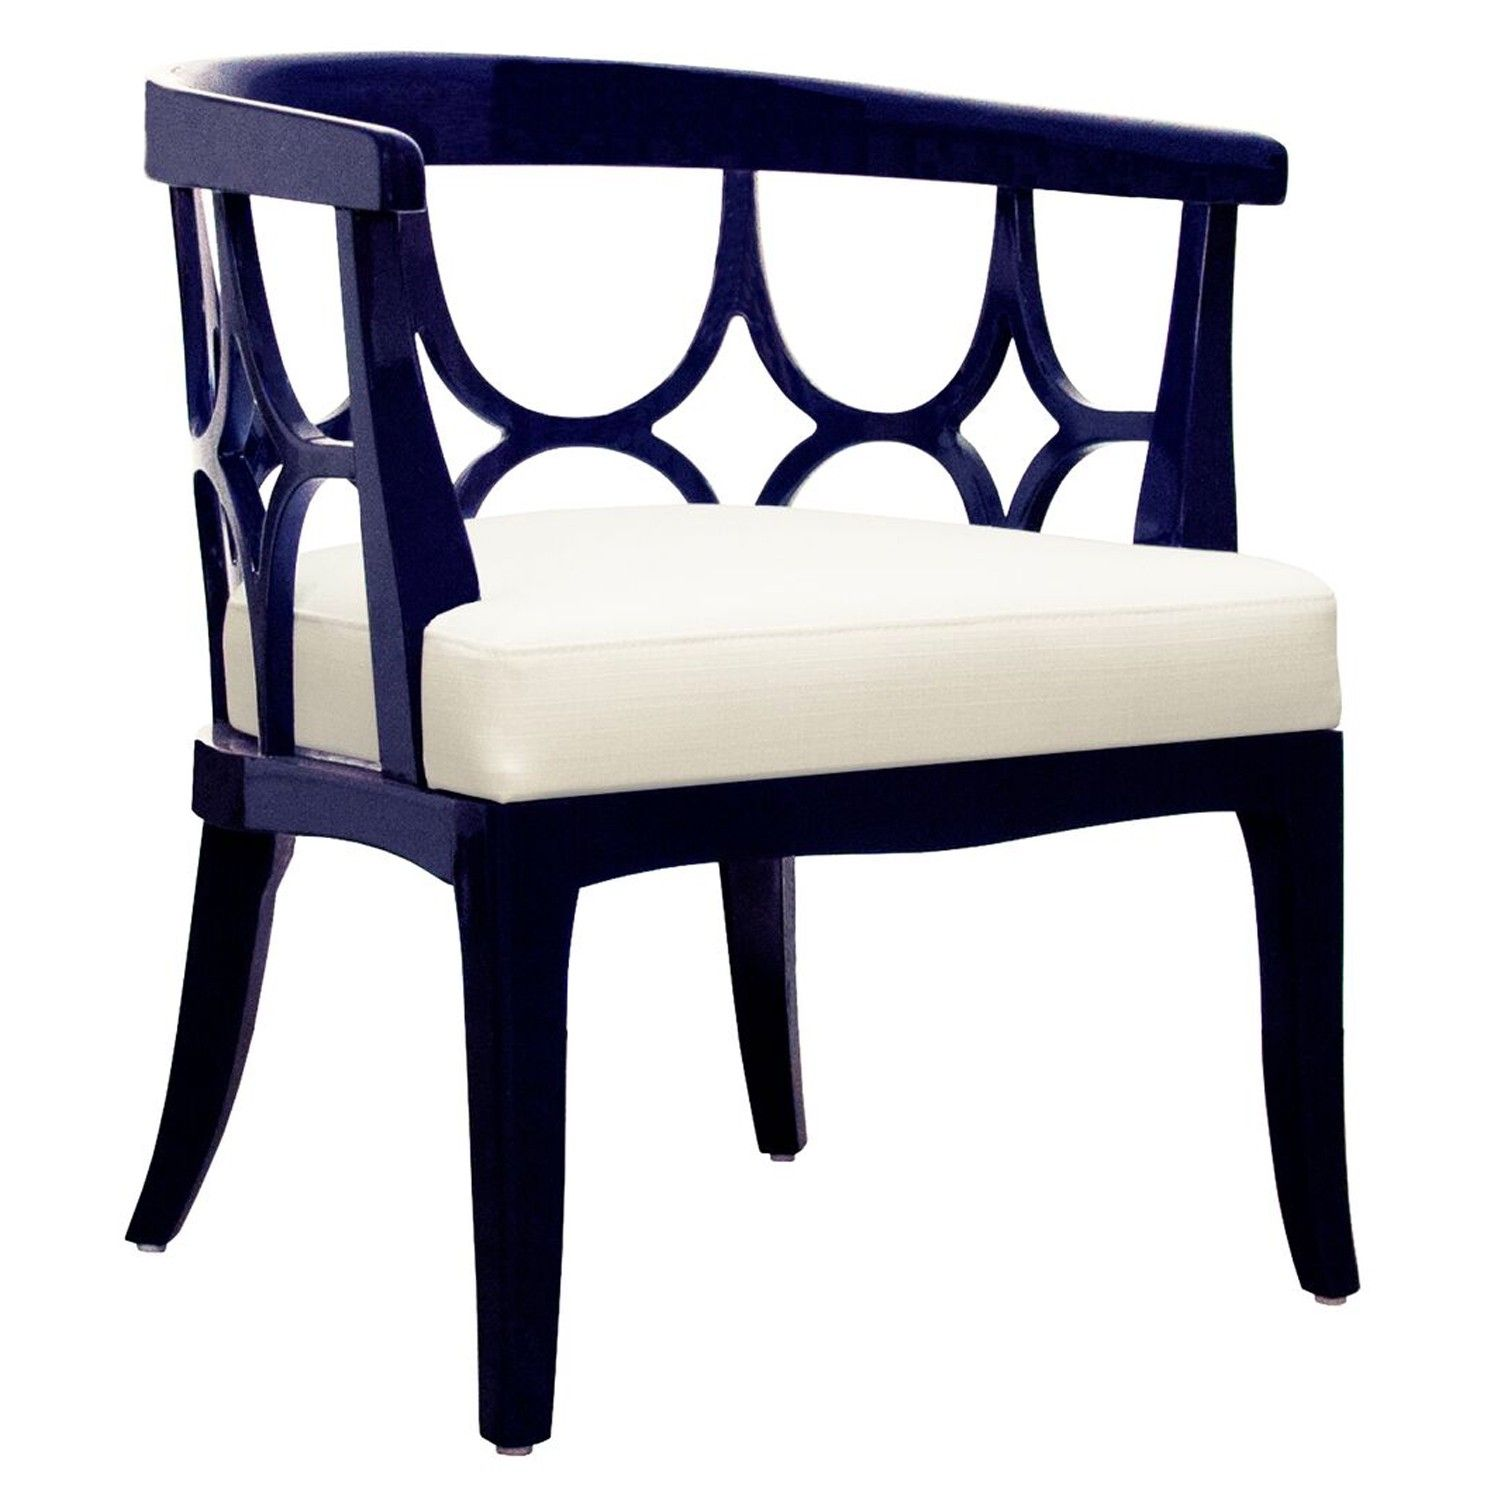 world away furniture. Information: Worlds Away Campbell Lacquer Chair Features: World Presents The Barrel Back Lime Green, White Or Navy With Furniture